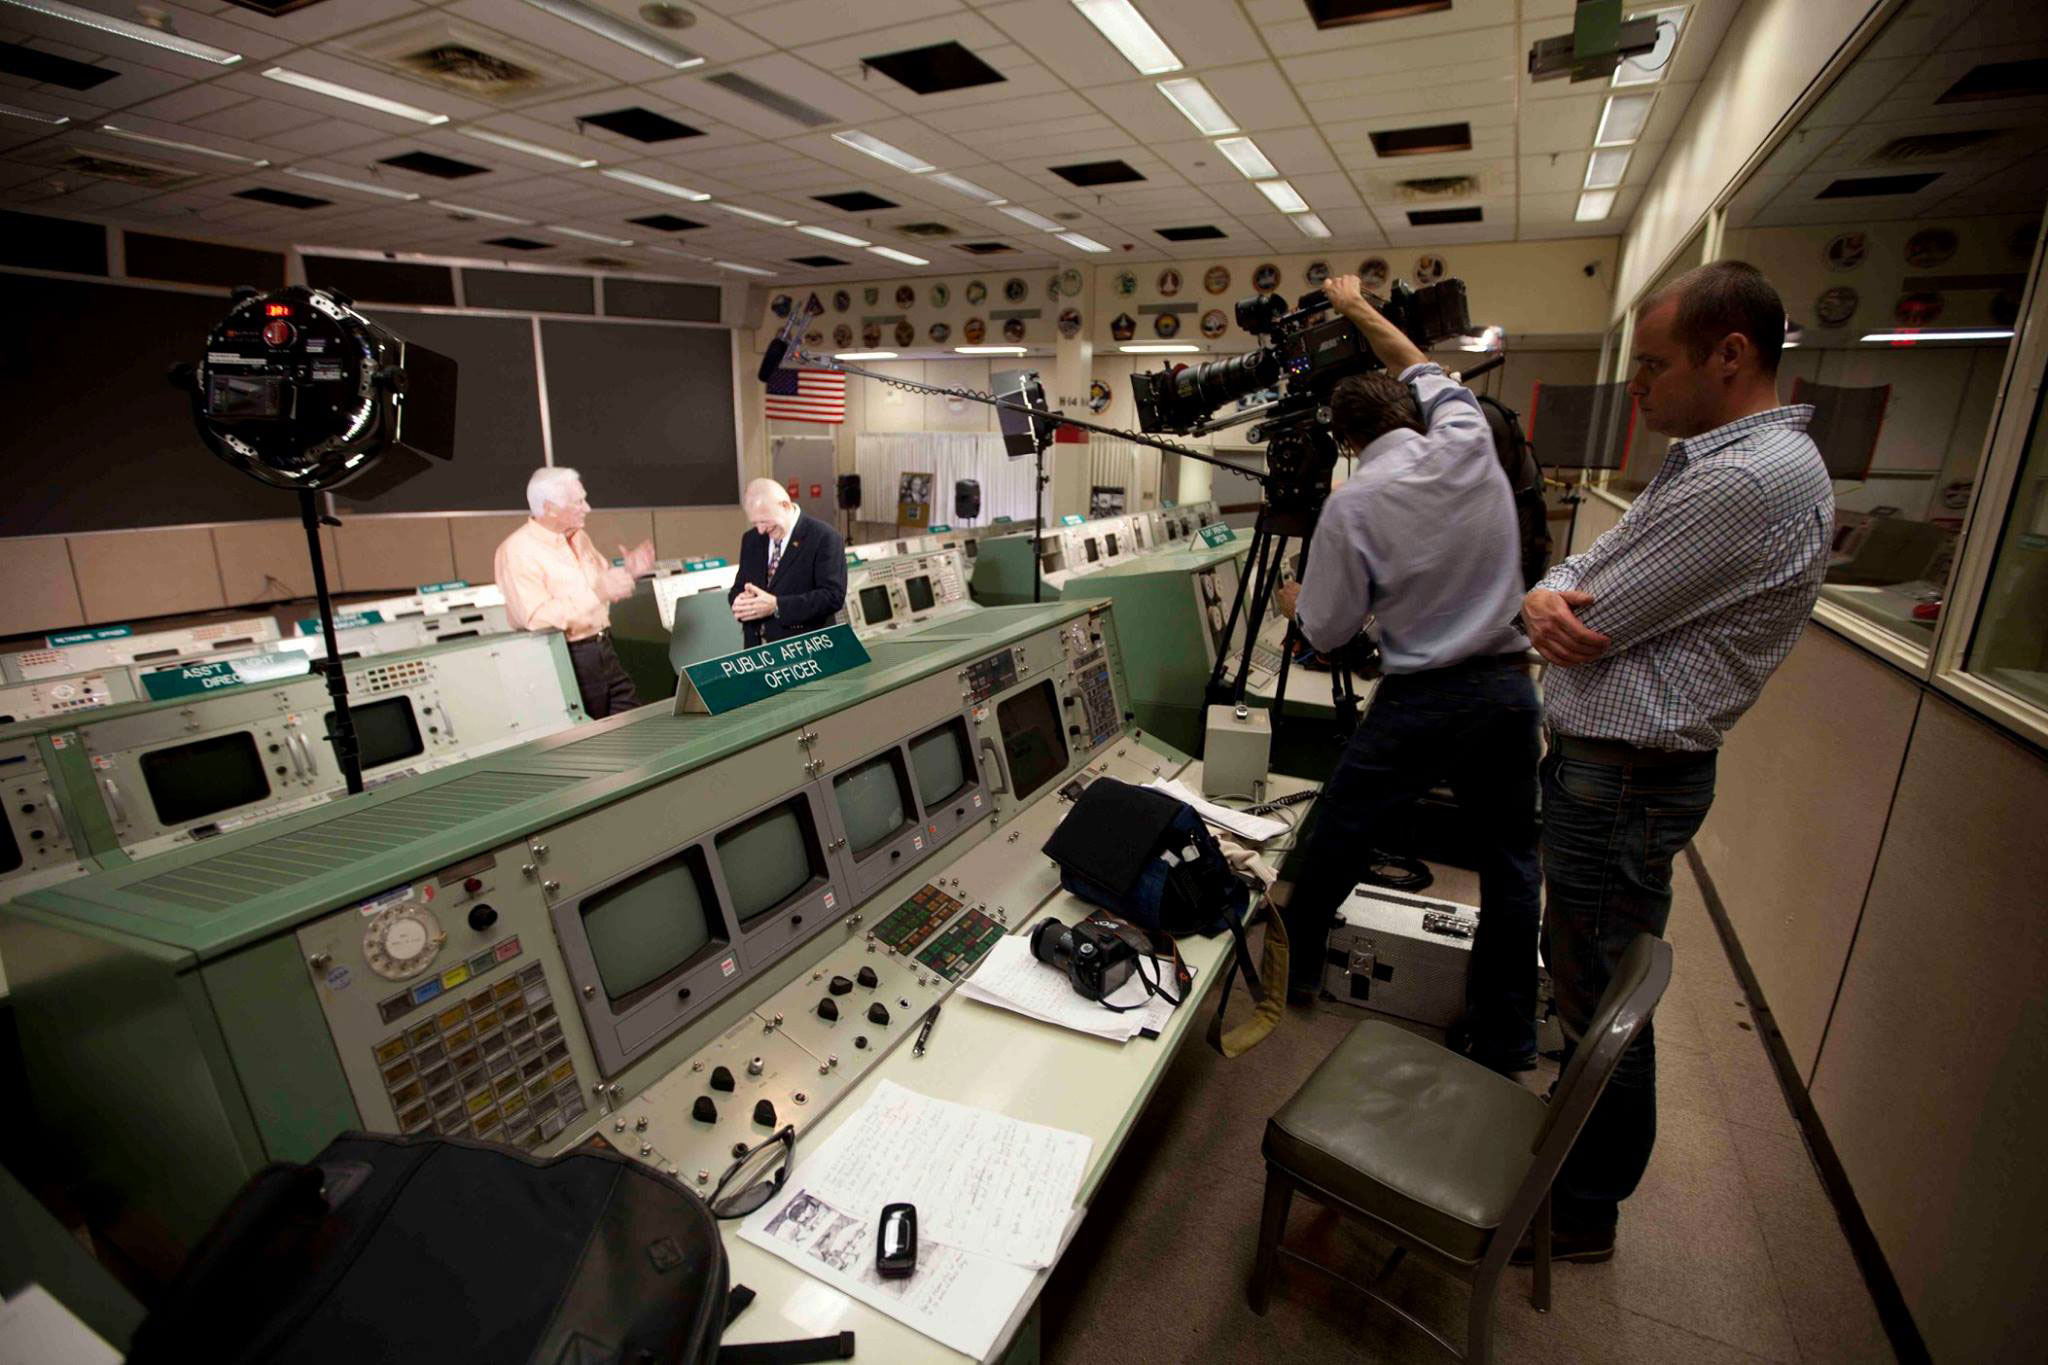 Gene Kranz and Gene Cernan filming in Mission Control Houston. Credit: Mark Stewart Productions)